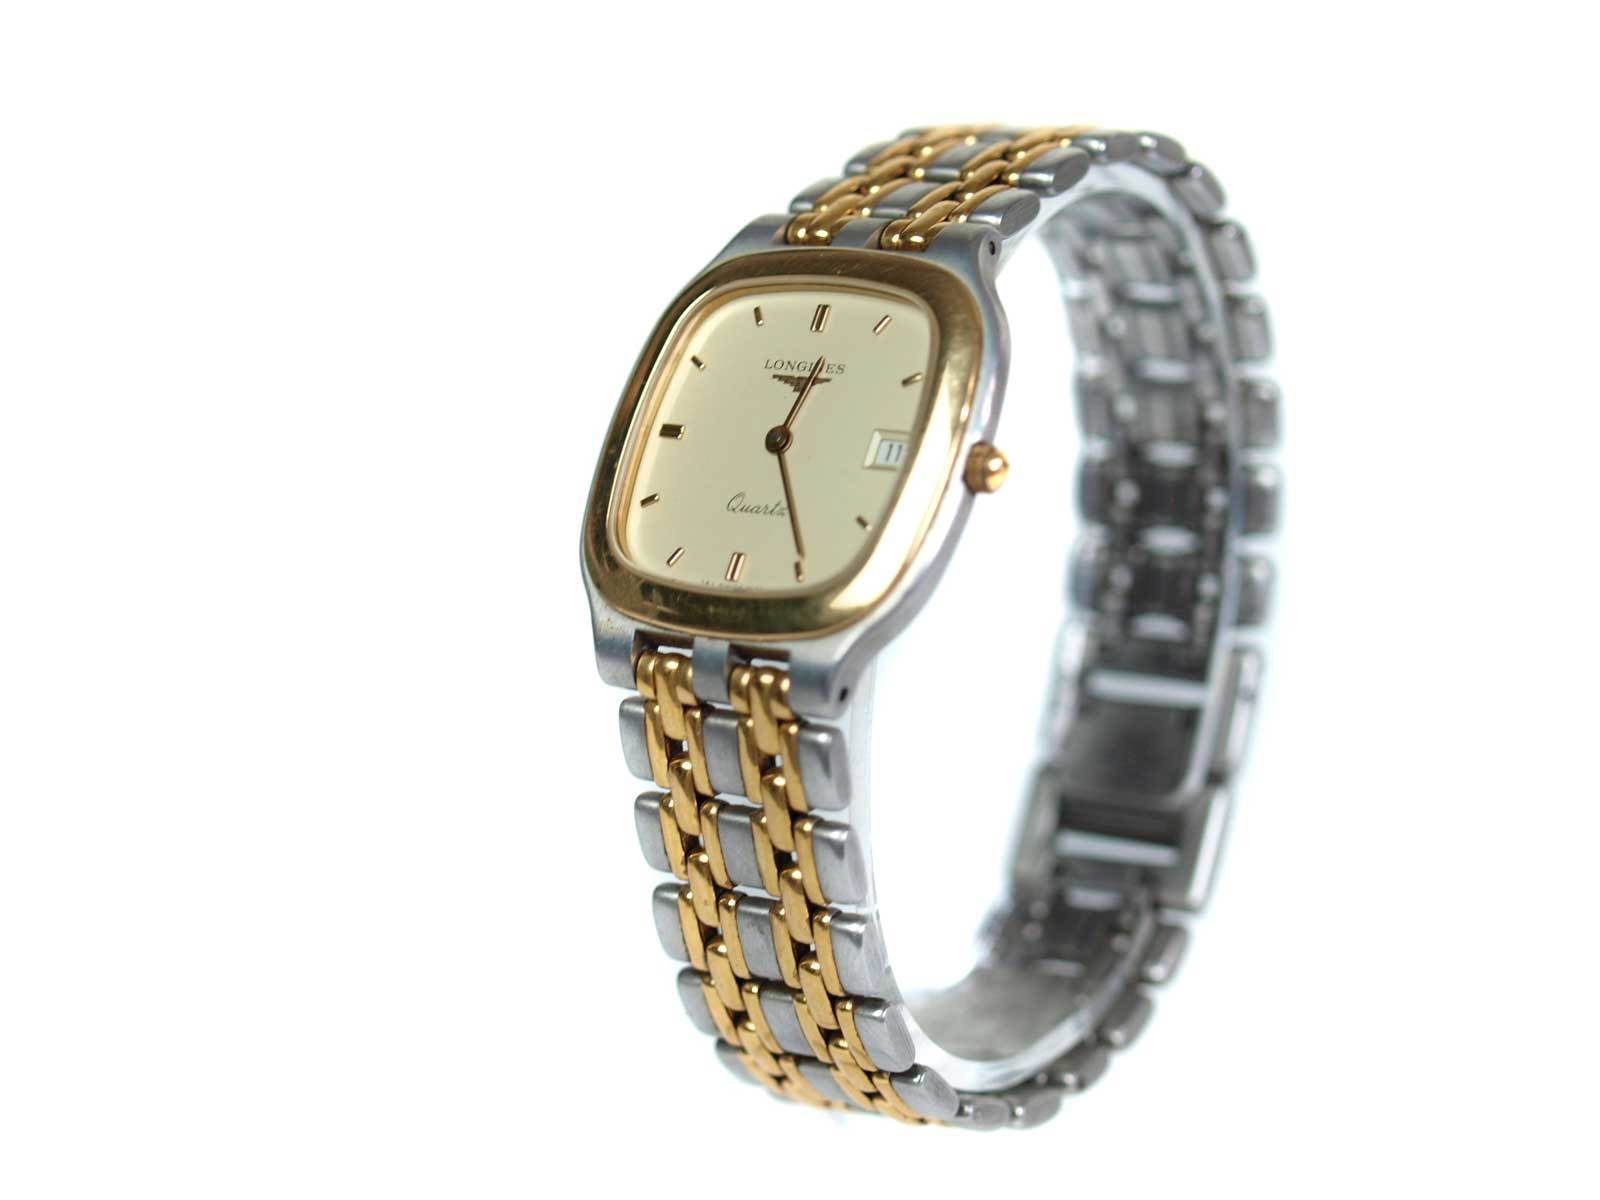 Primary image for Auth LONGINES Date Stainless Steel Quartz Watch Unisex LW16619L